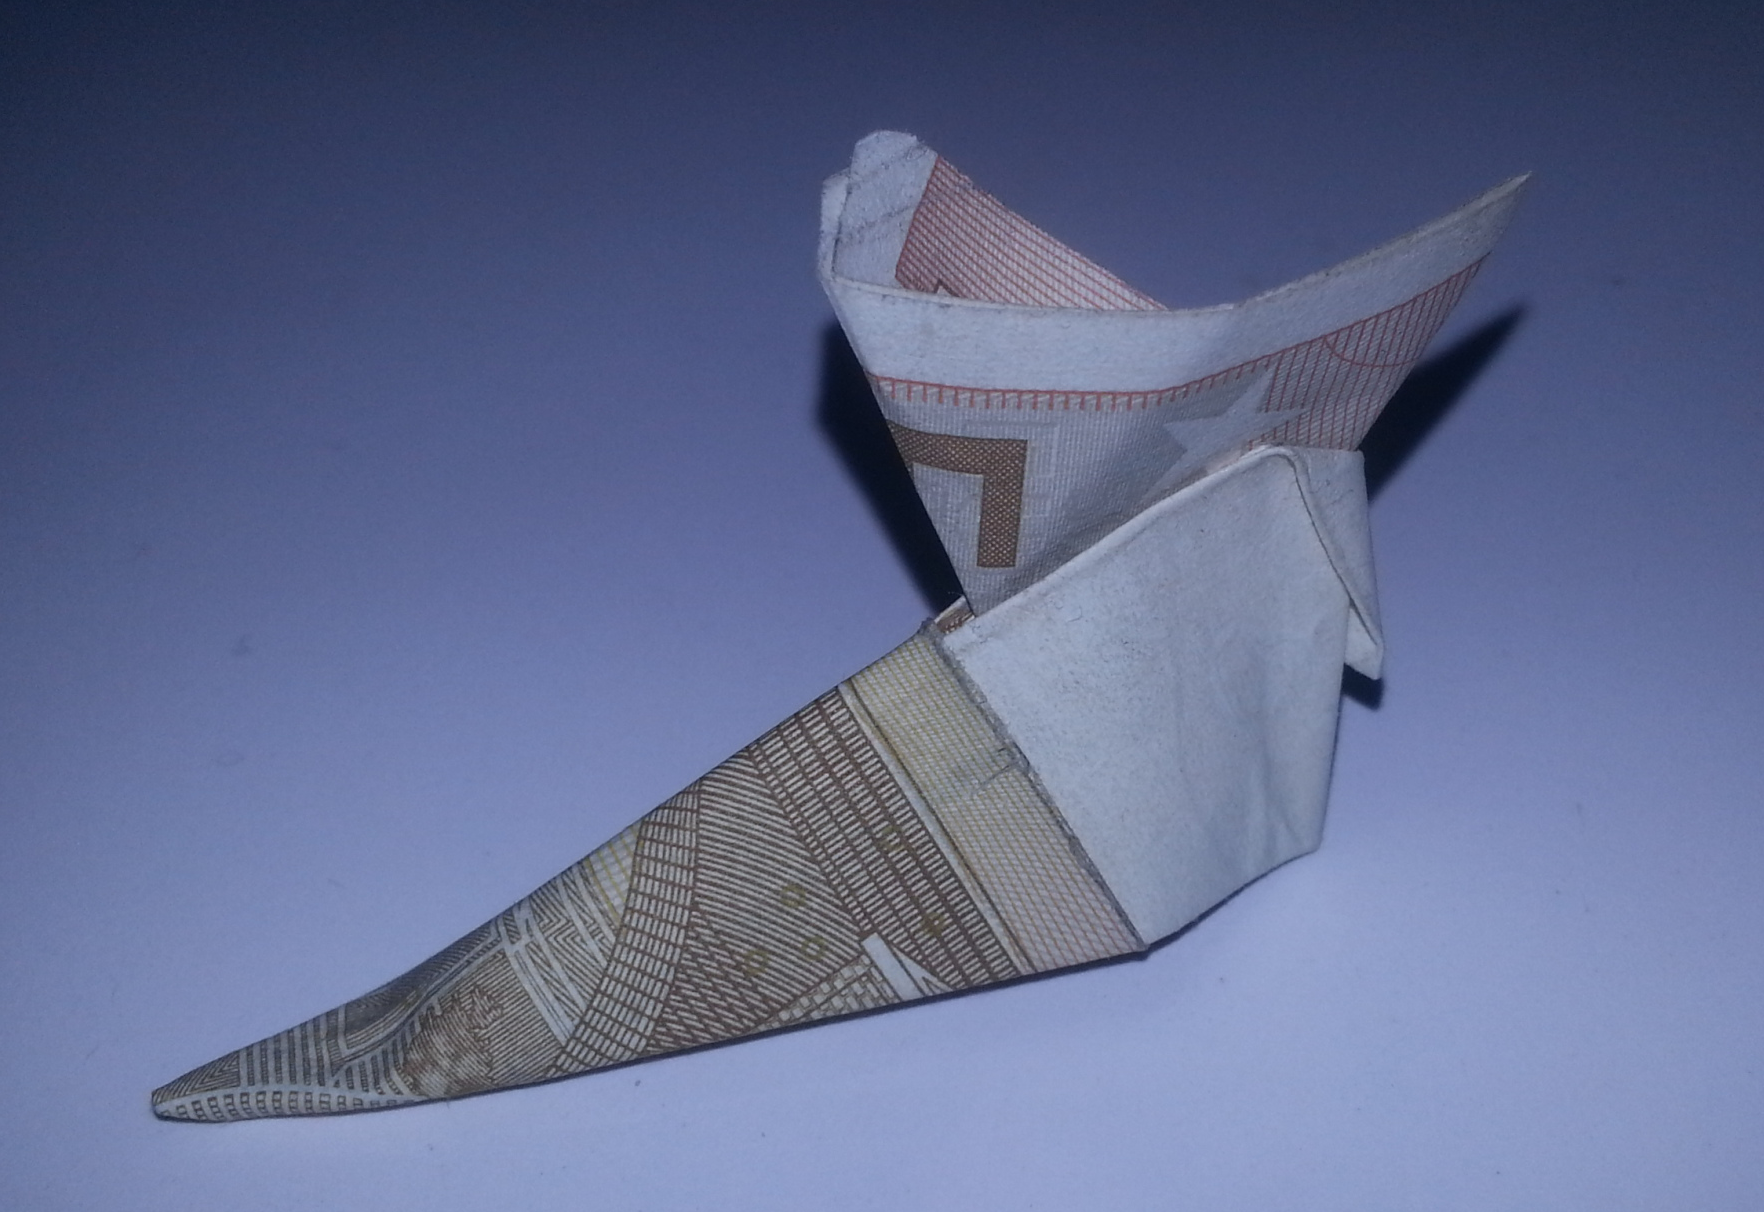 Folding boots from a banknote